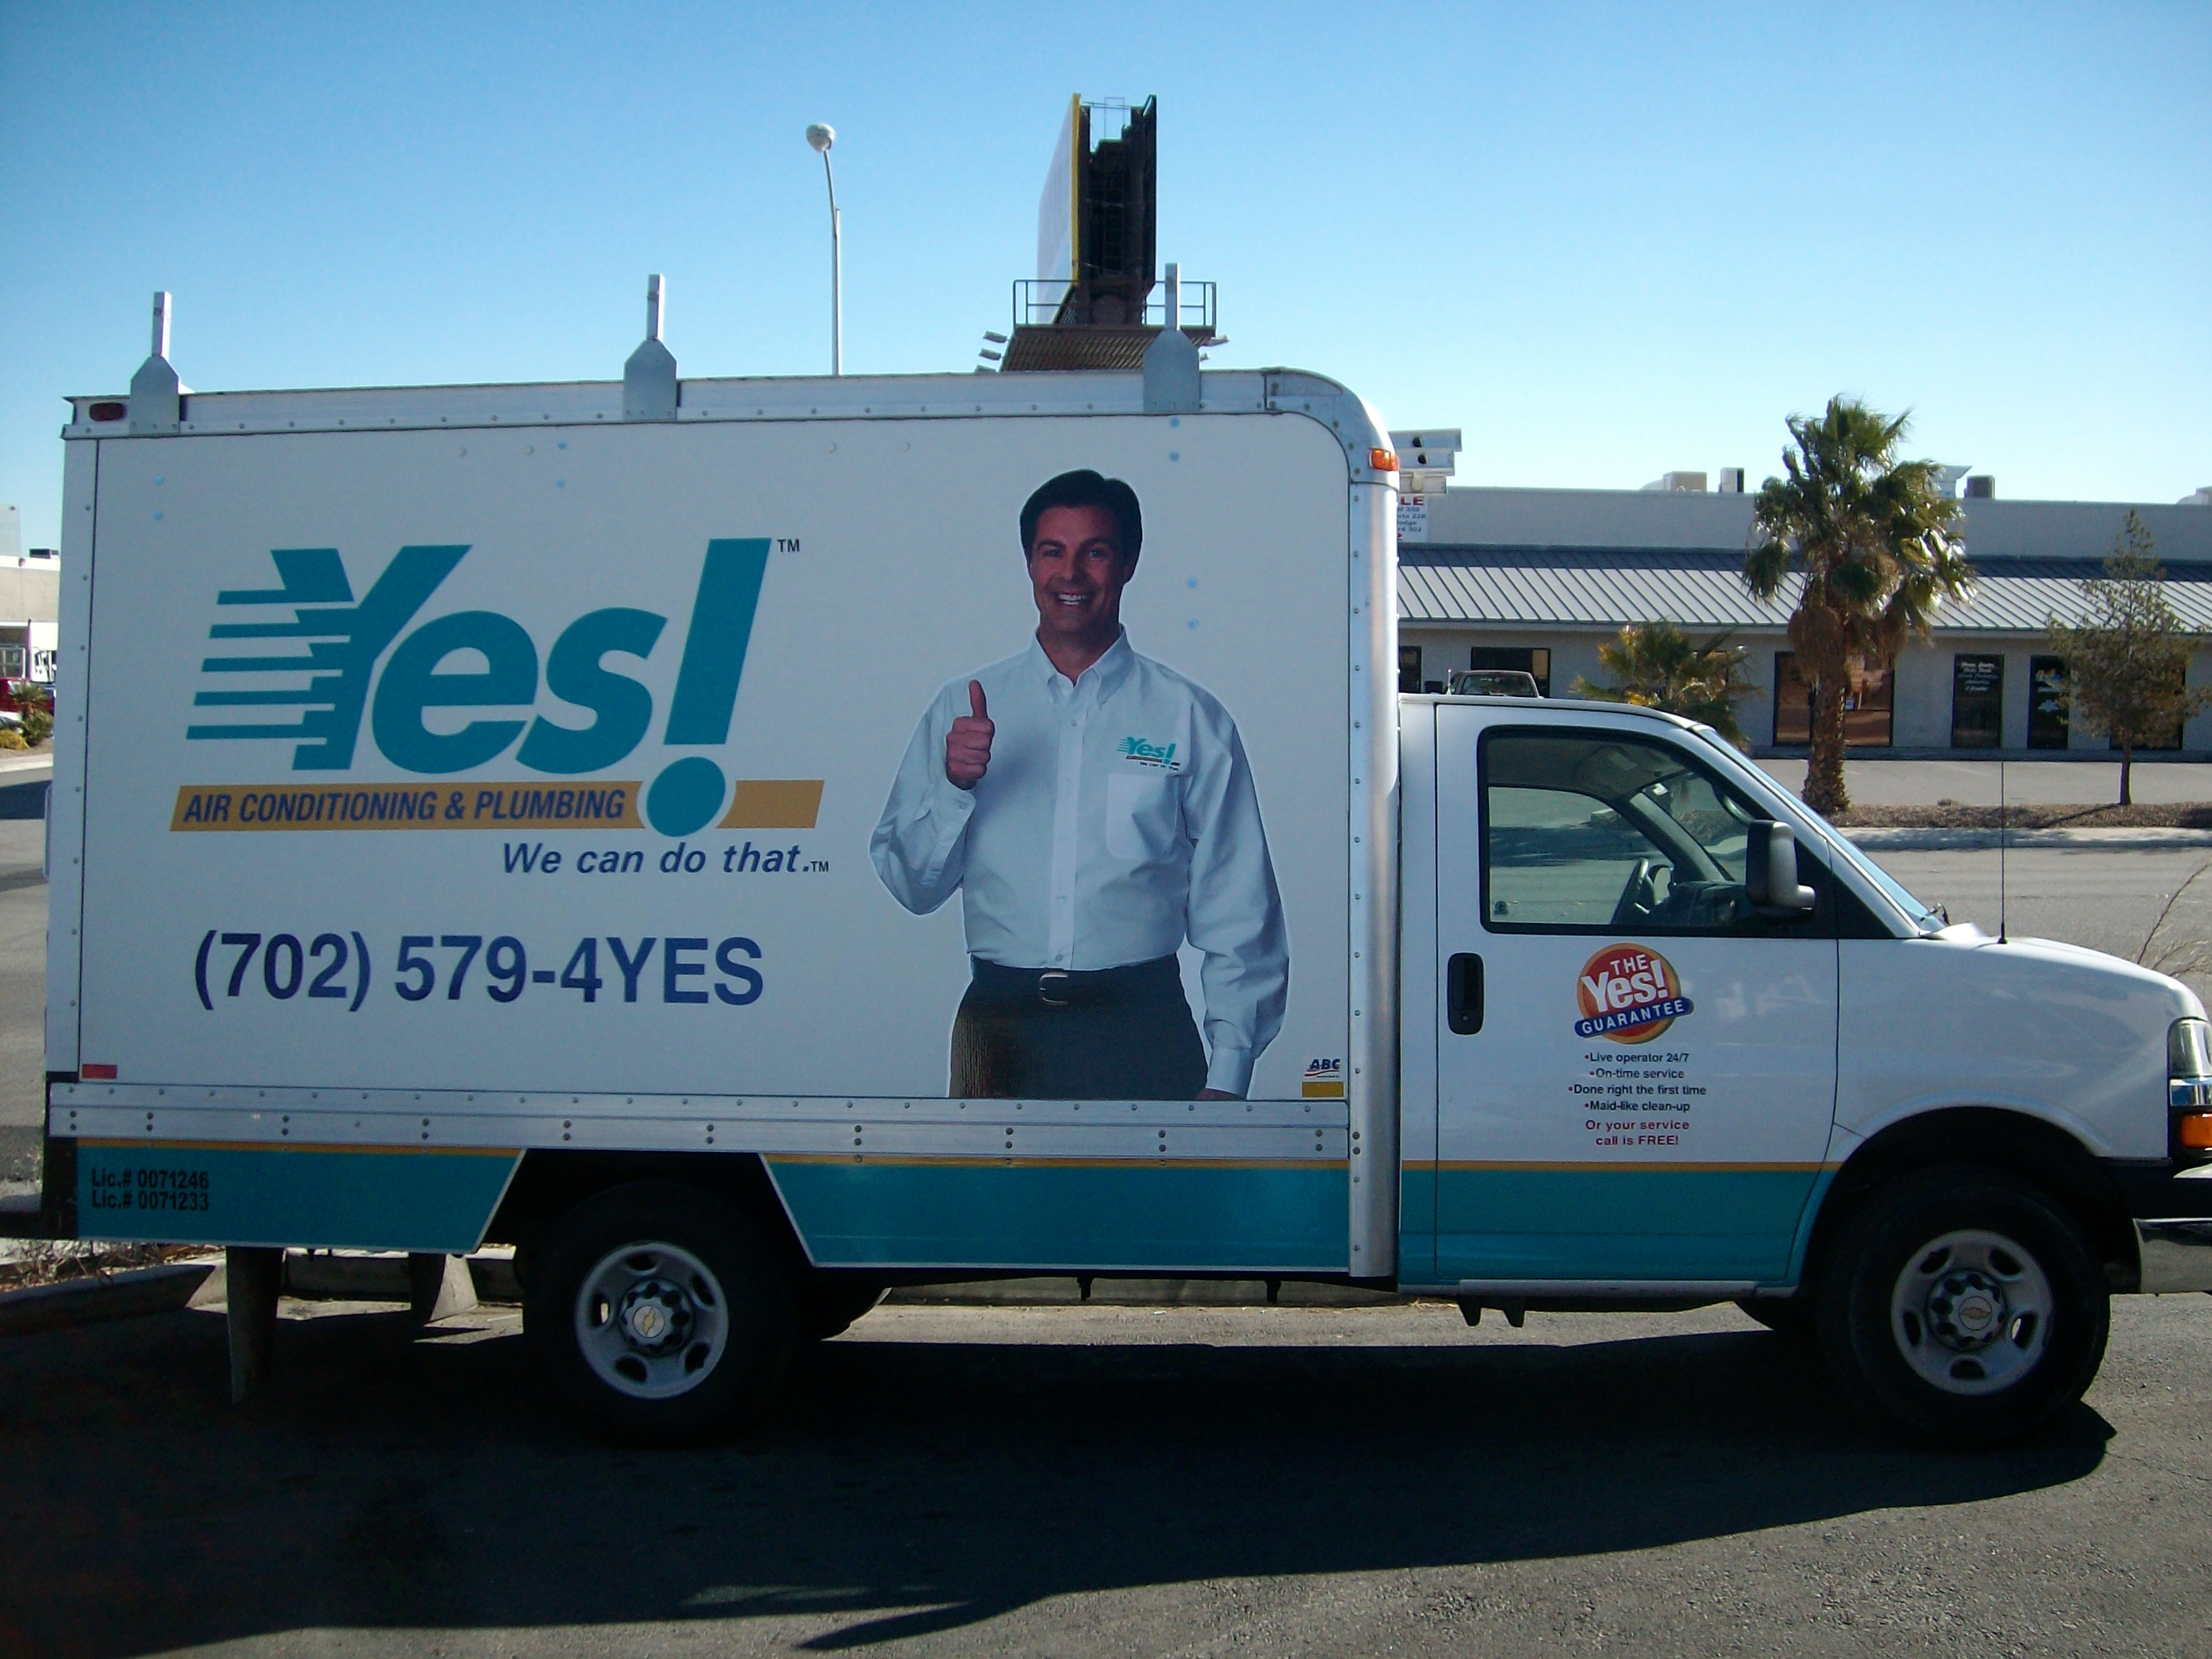 Yes Plumbing Custom Fleet